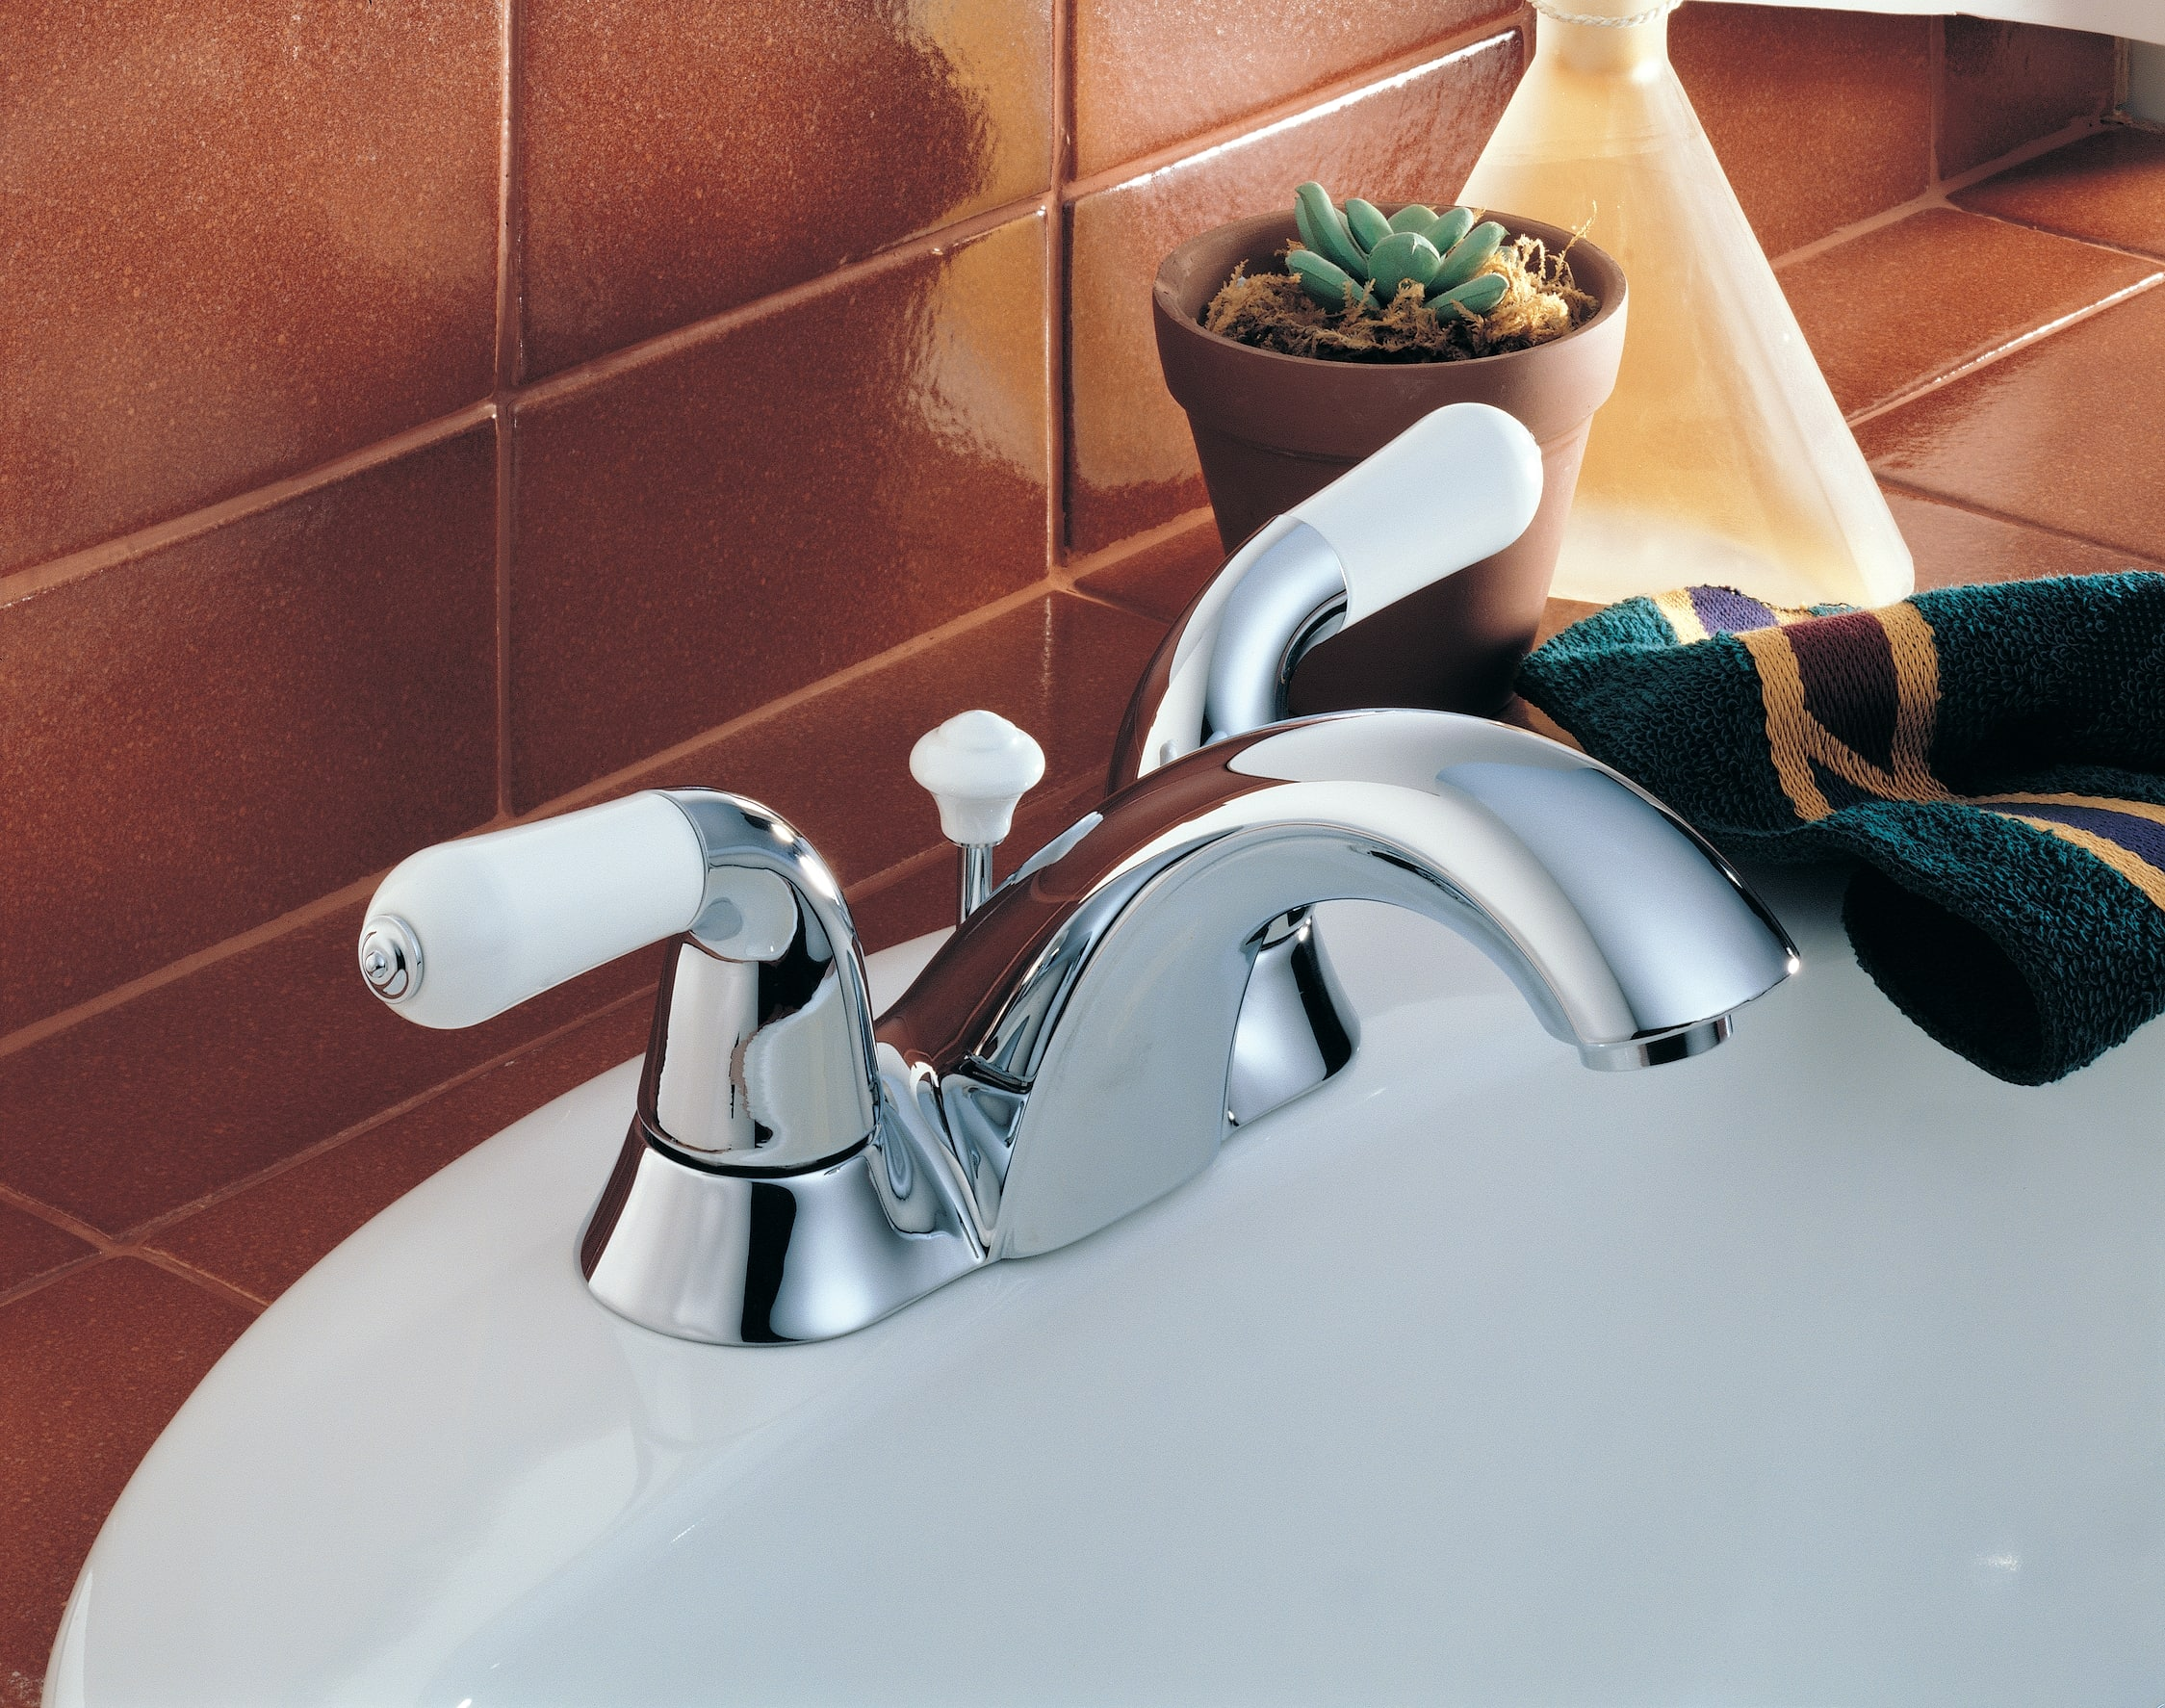 Contemporary Delta Bathroom Taps Images - Bathtub Ideas - dilata.info